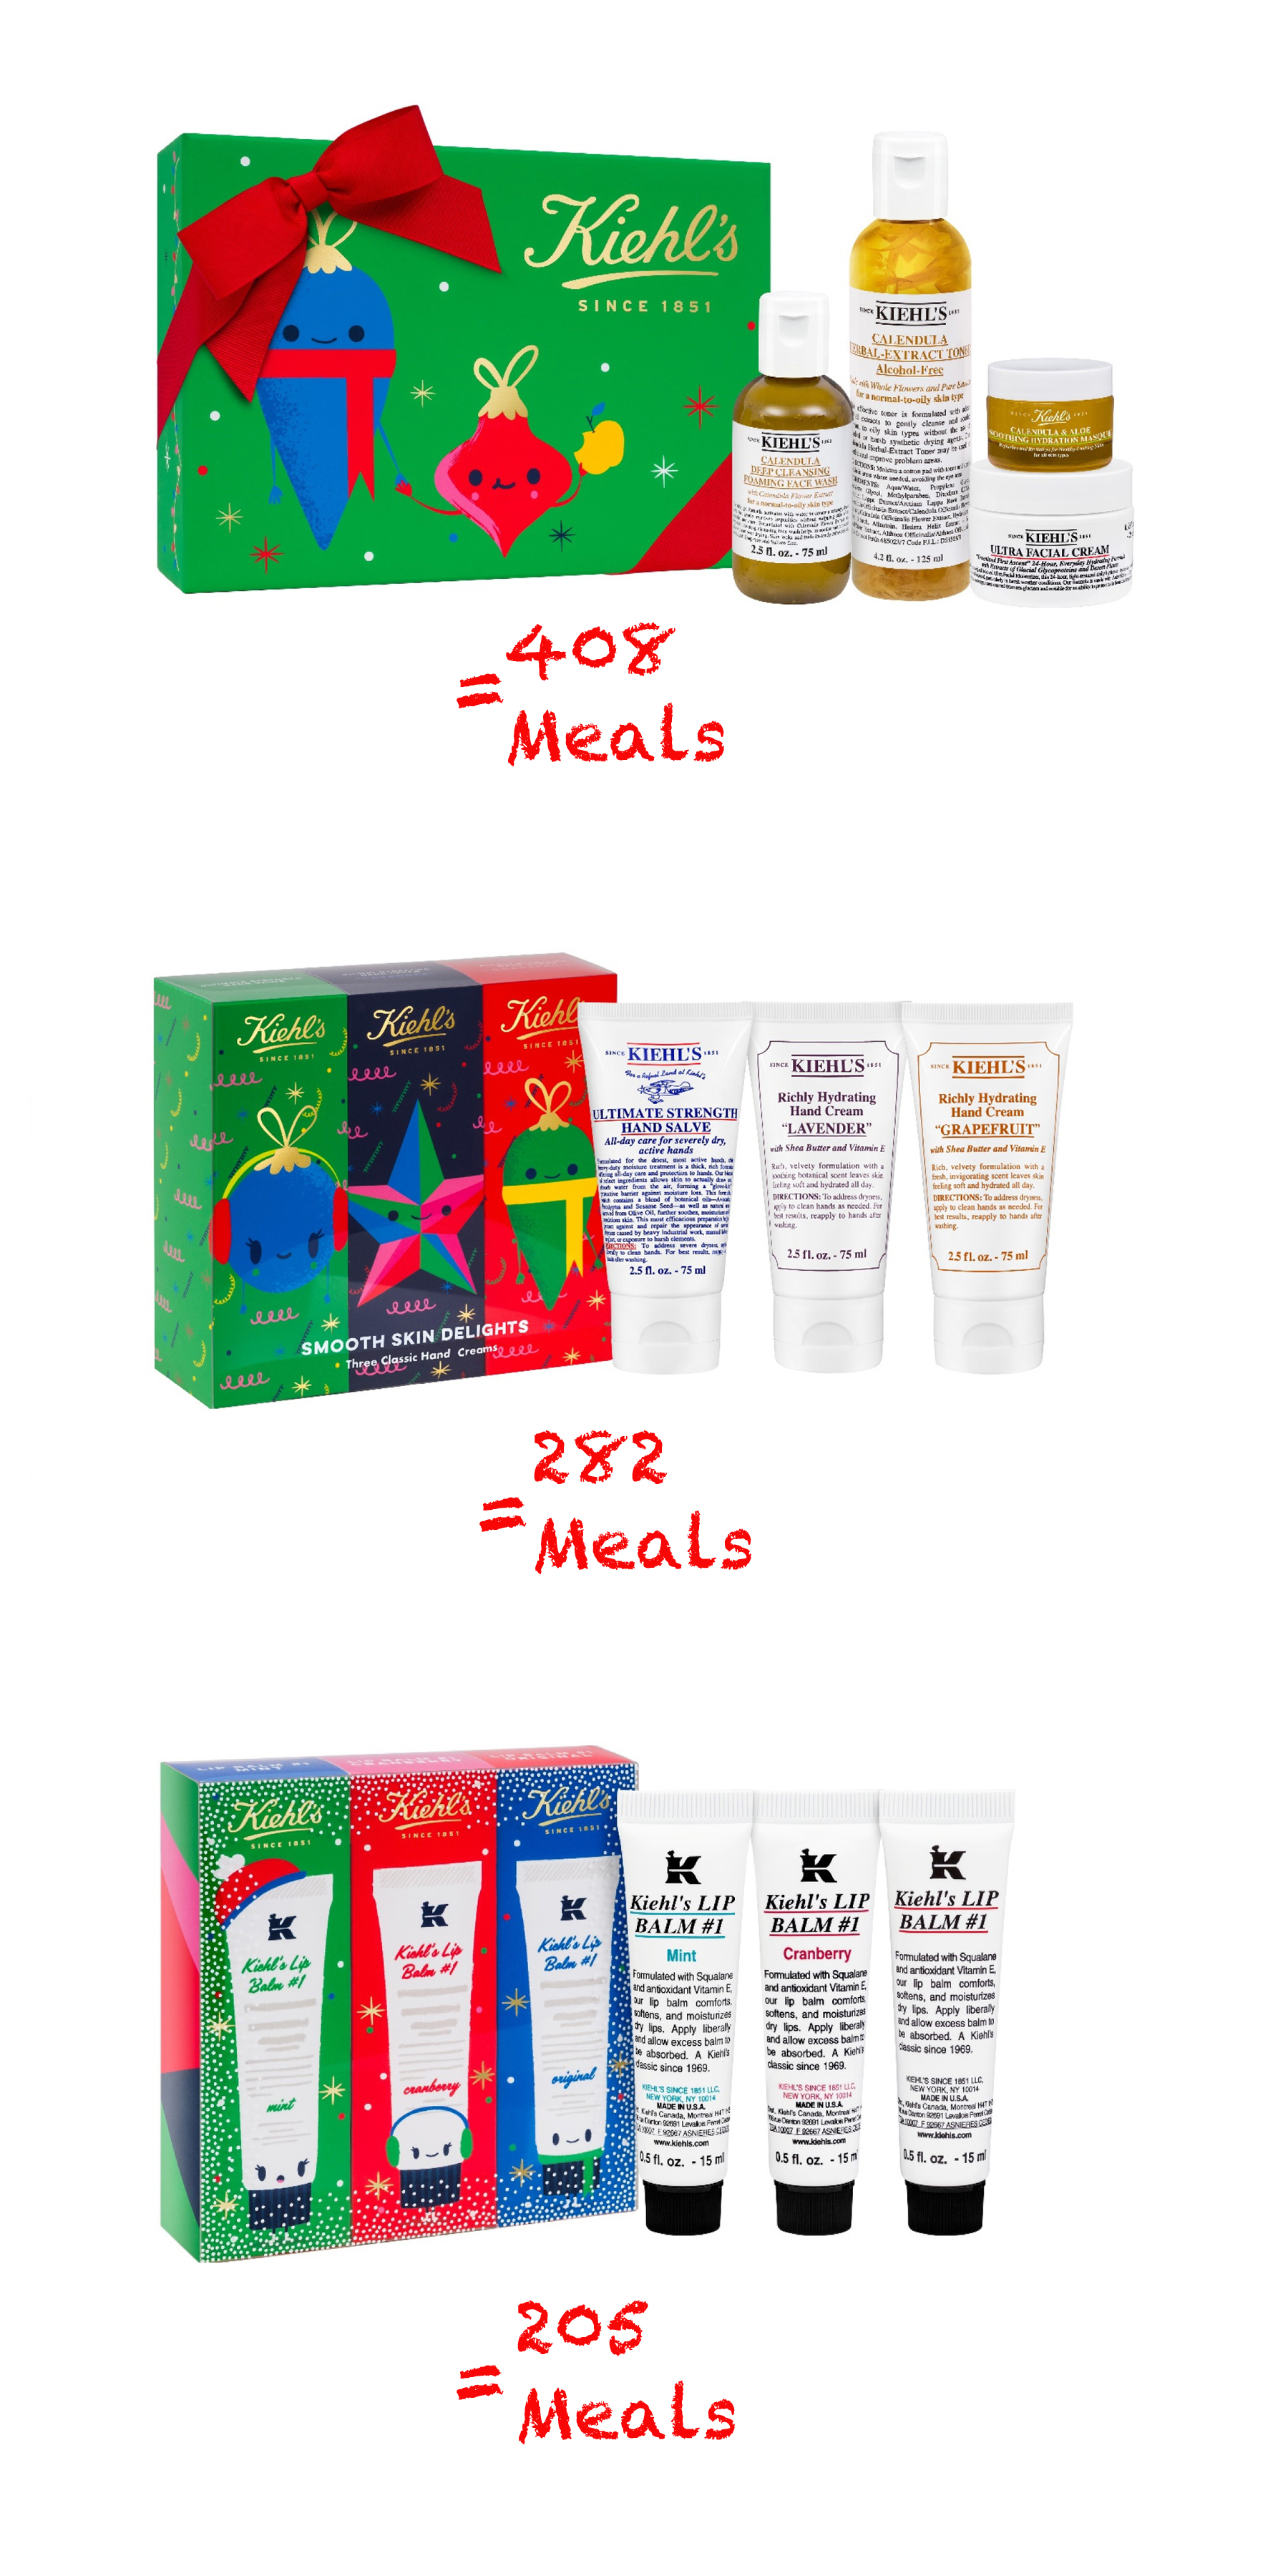 Top to bottom: Collection for a Cause, $50, Provides 408 Meals; Smooth Skin Delights, $35 ,Provides 282 Meals; Kiss Me With Kiehl's, $25, Provides 205 Meals.